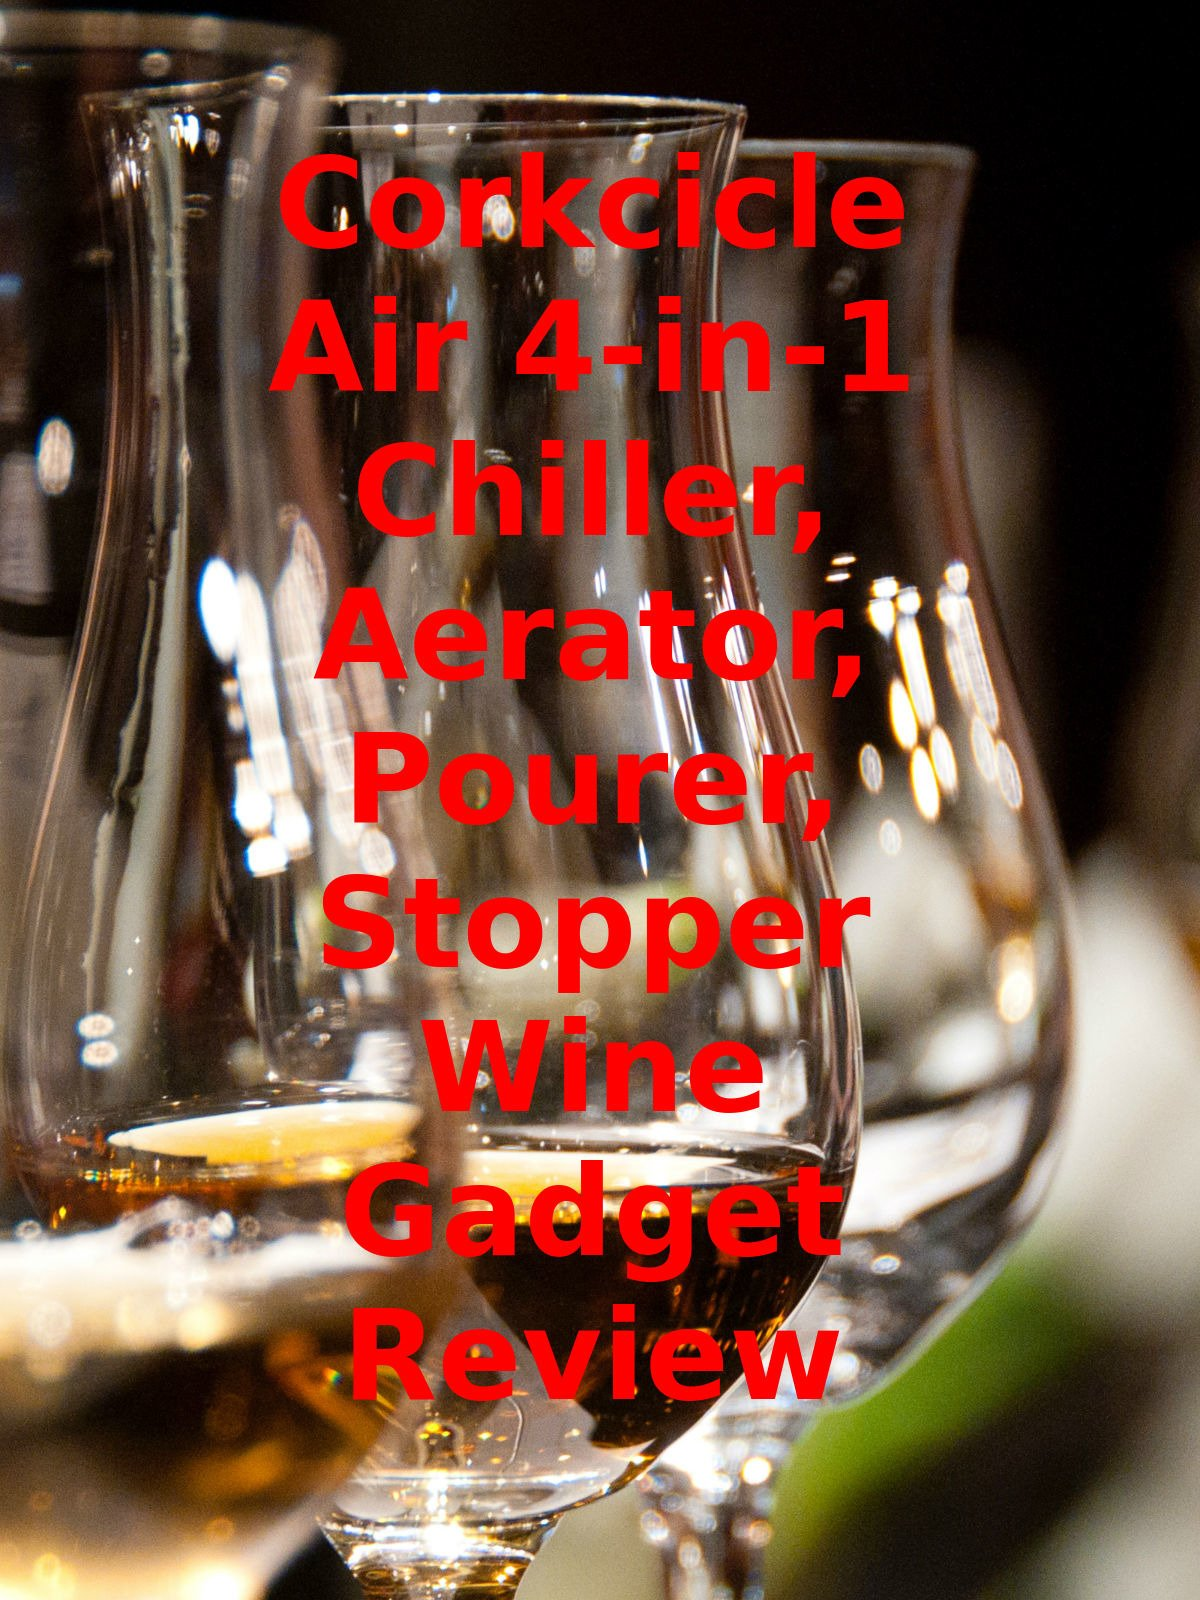 Review: Corkcicle Air 4-in-1 Chiller, Aerator, Pourer, Stopper Wine Gadget Review on Amazon Prime Video UK